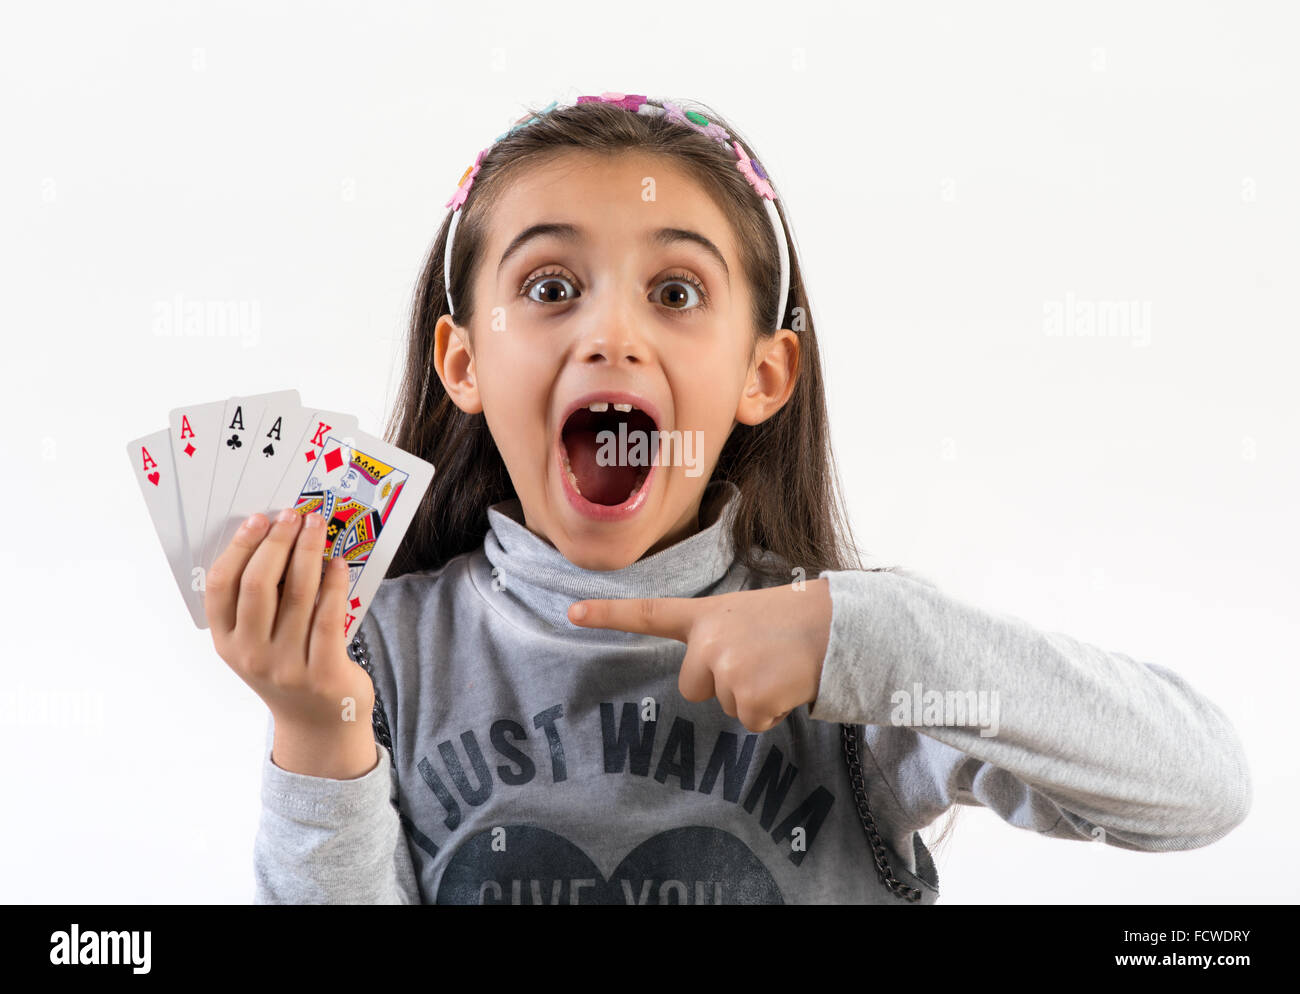 Excited little girl pointing to a winning poker hand - Stock Image